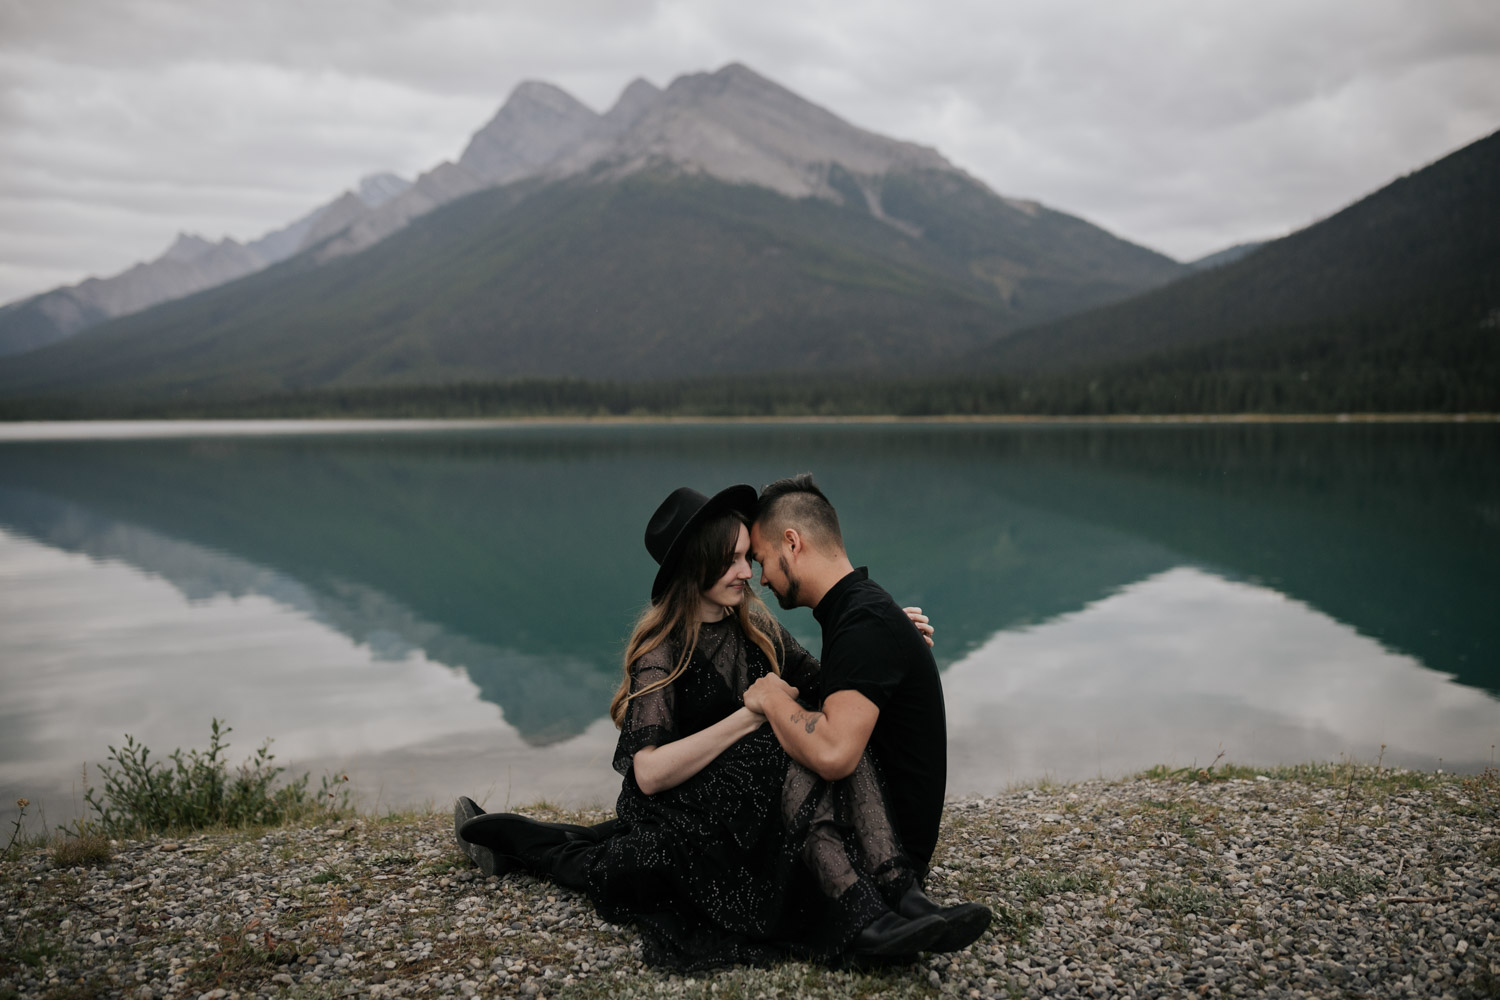 Epic Photo Of Couple Sitting In Front Of Turquoise Blue Lake With Mountain In Background